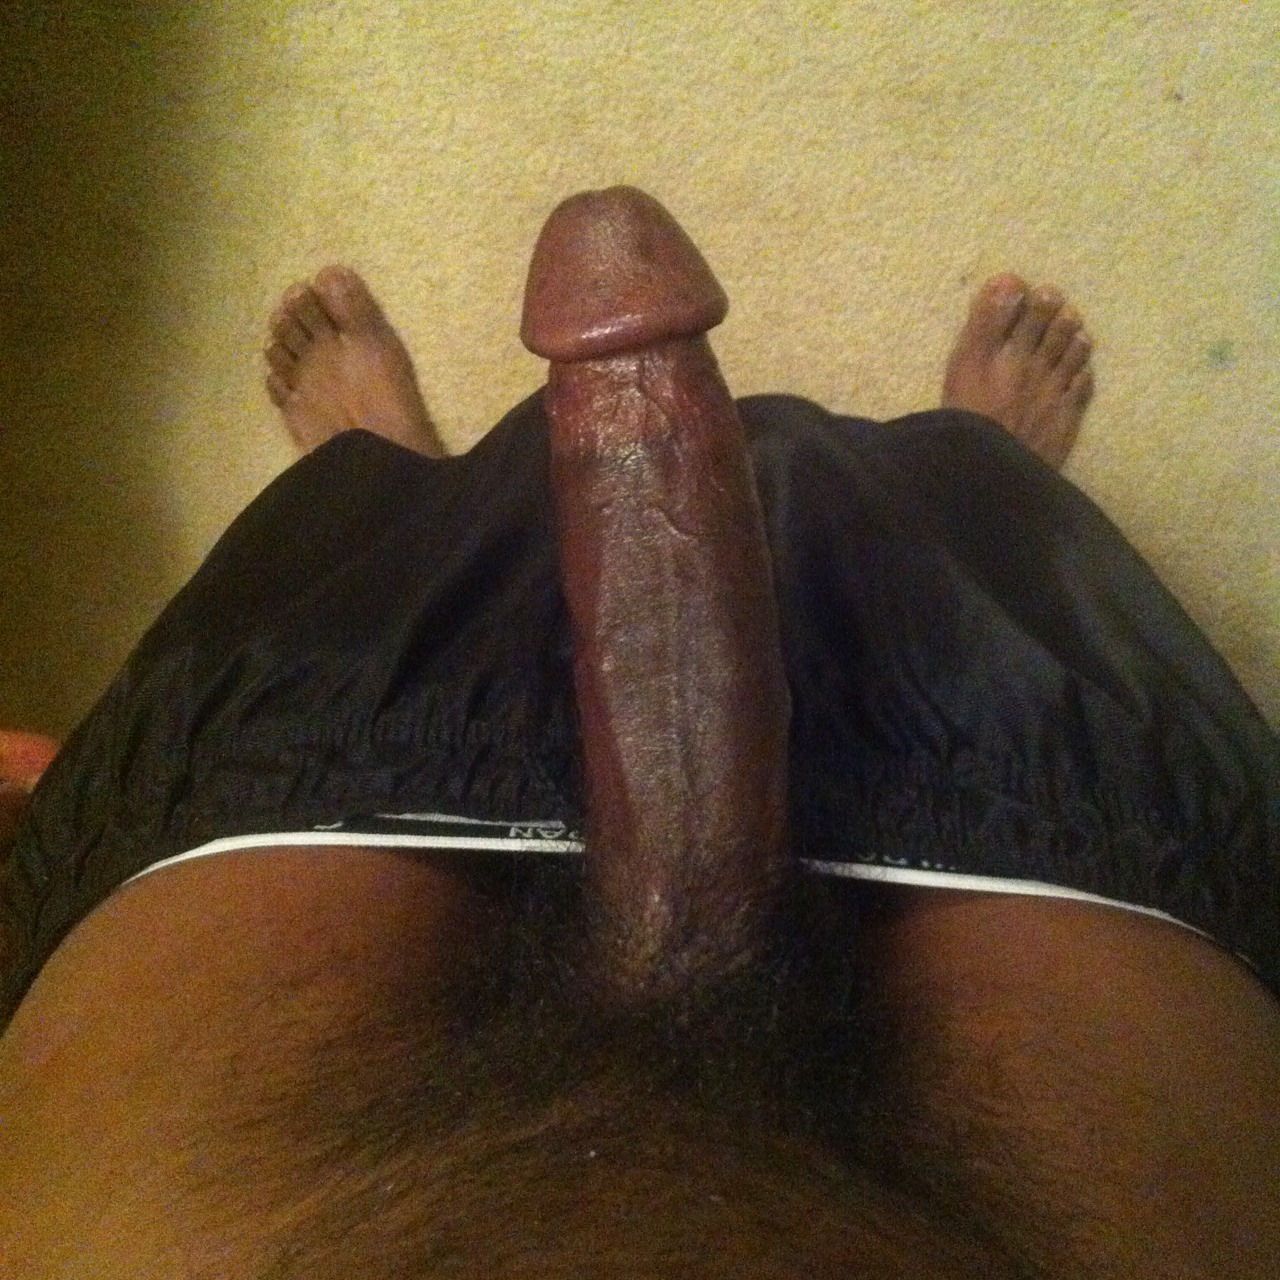 Xxx gay big dick